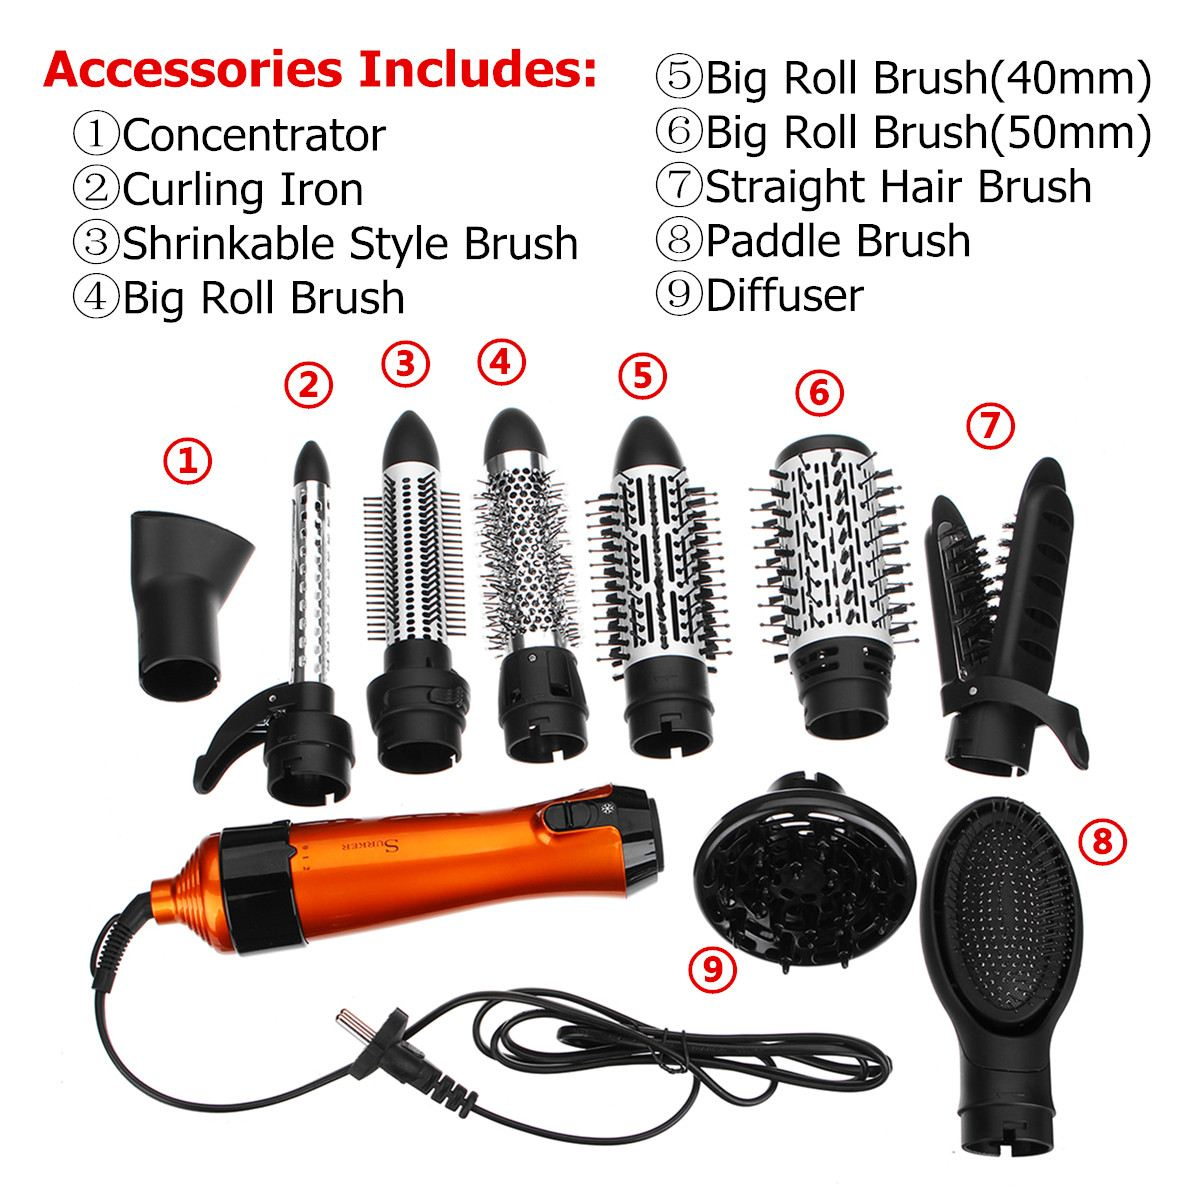 SURKER 10 in 1 Hair Styling Brush Comb Dryer 1000W 220V-240V Curler Straightener Hot Cool Air Styling Kit Two File Repair шаблон для мема с дрейком